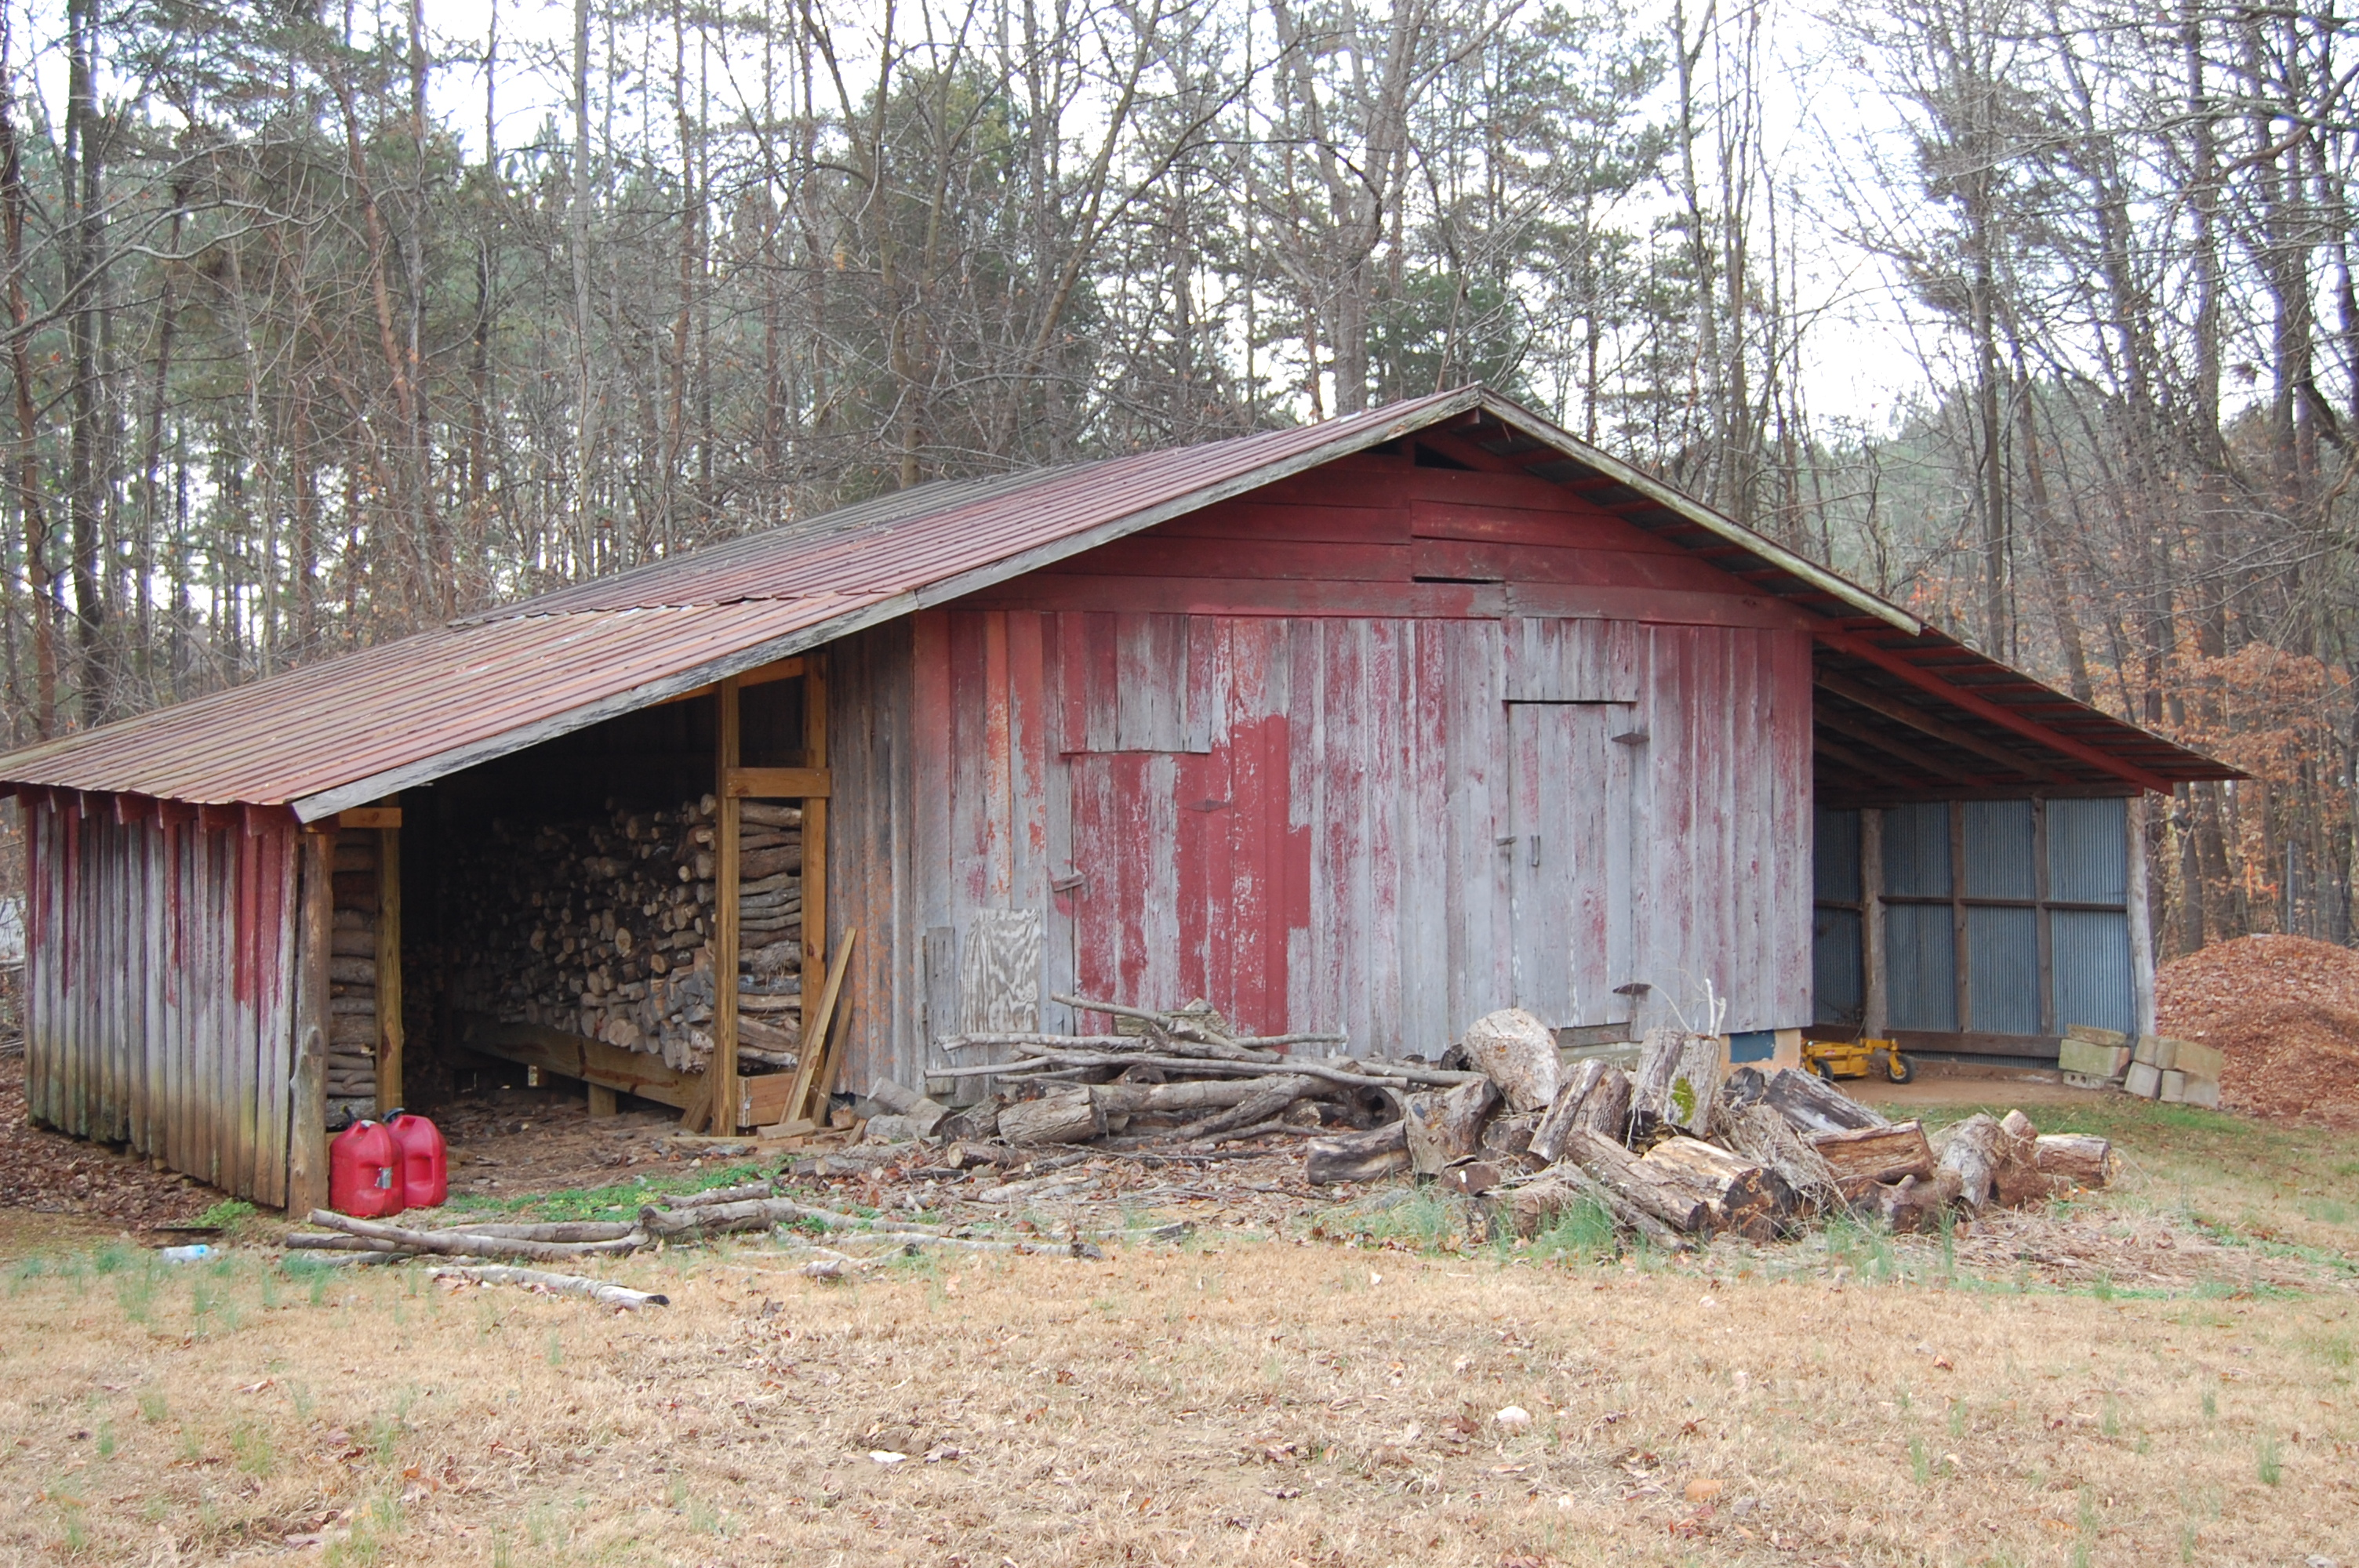 File:Old barn from the 1950s.jpg - Wikipedia